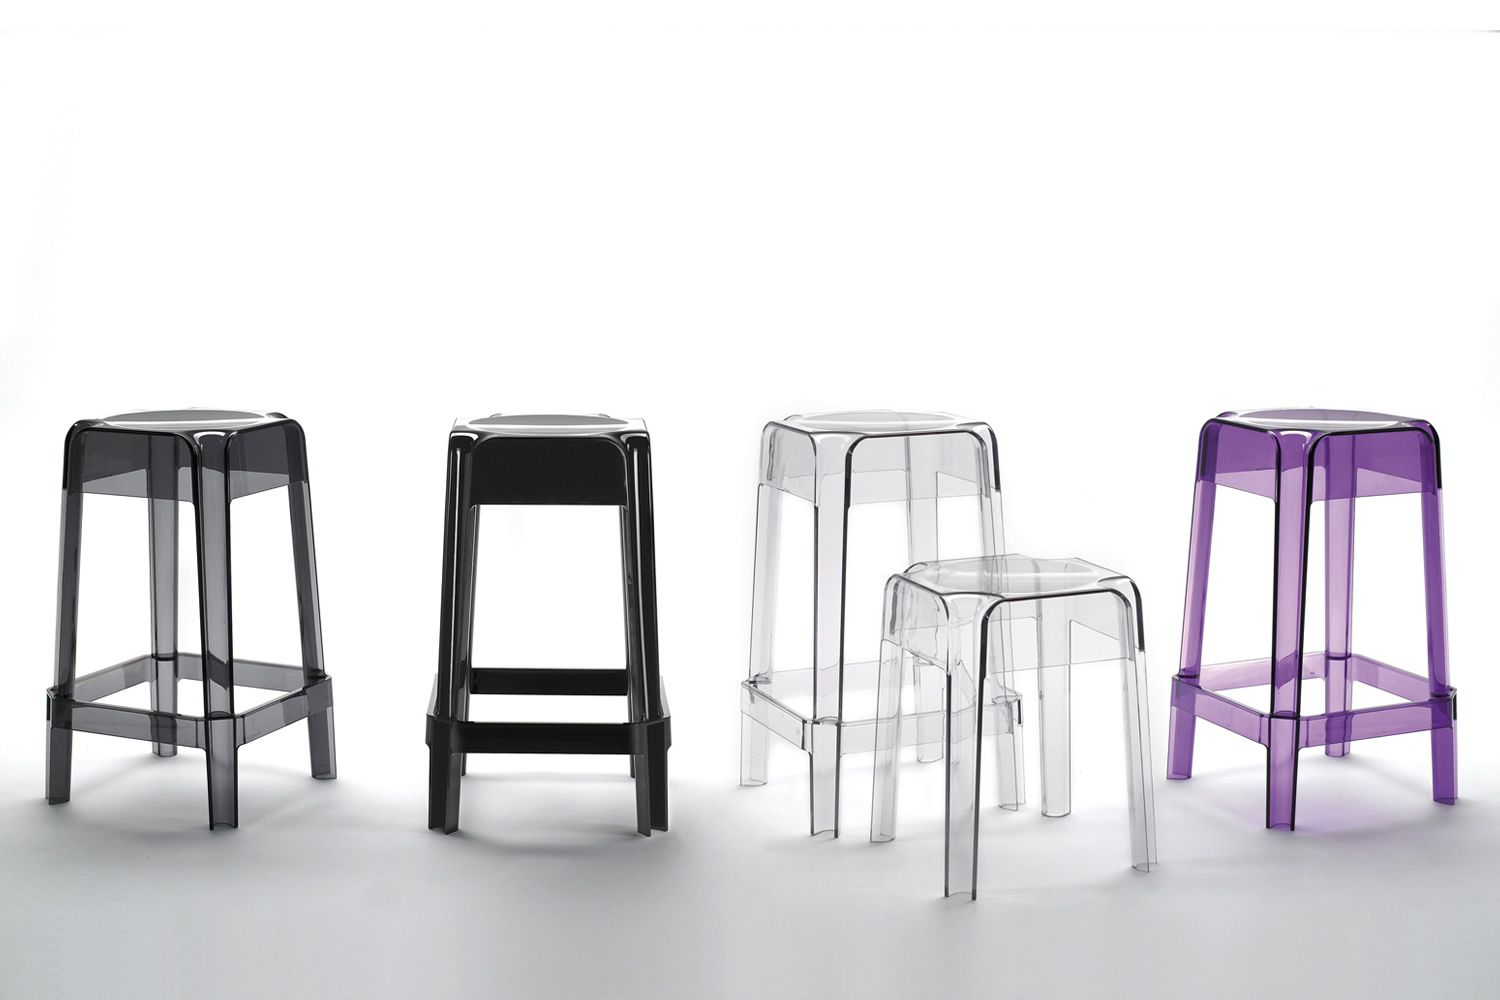 Tabourets De Bar Polycarbonate Rubik 580 Pour Bars Et Restaurants Tabouret De Bar En